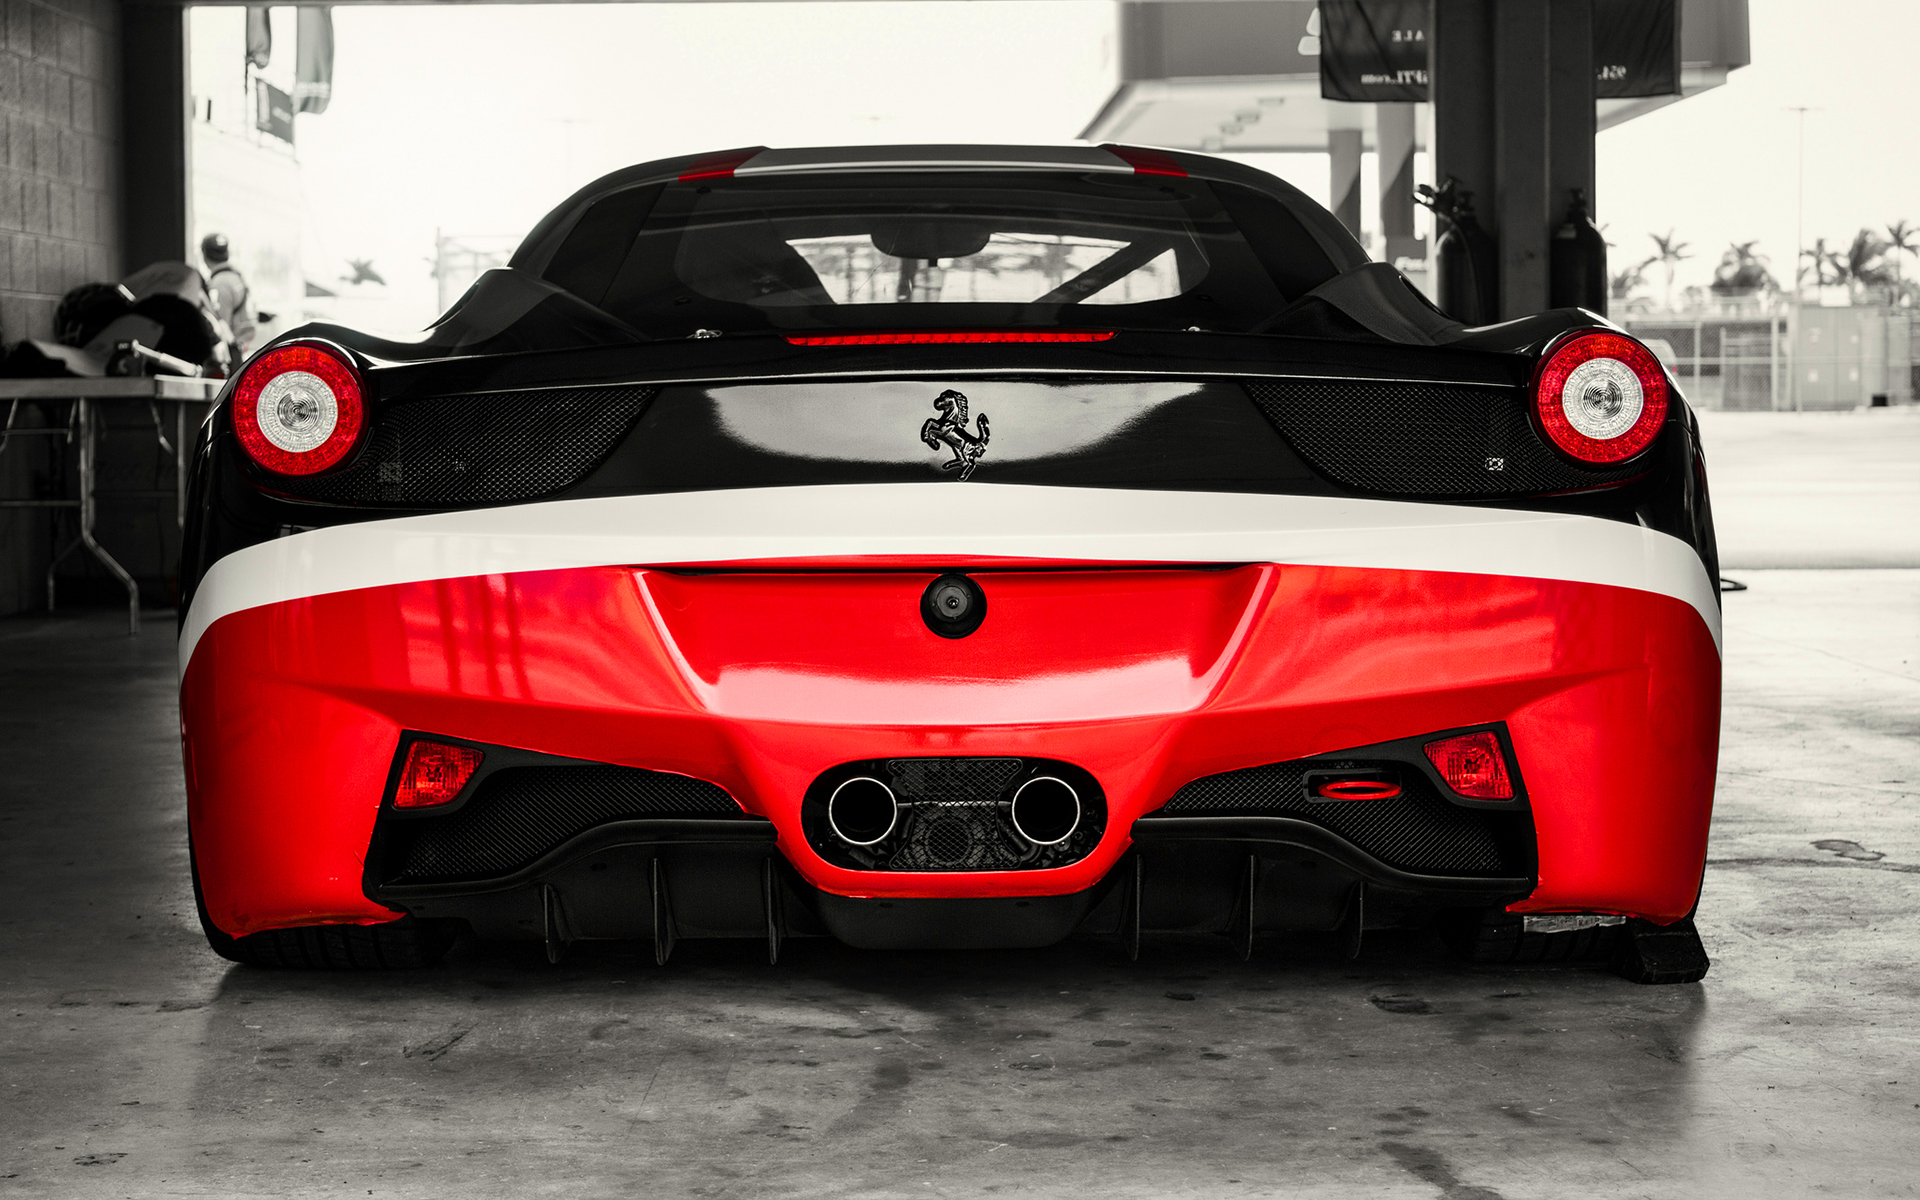 Ferrari 458 red black rear